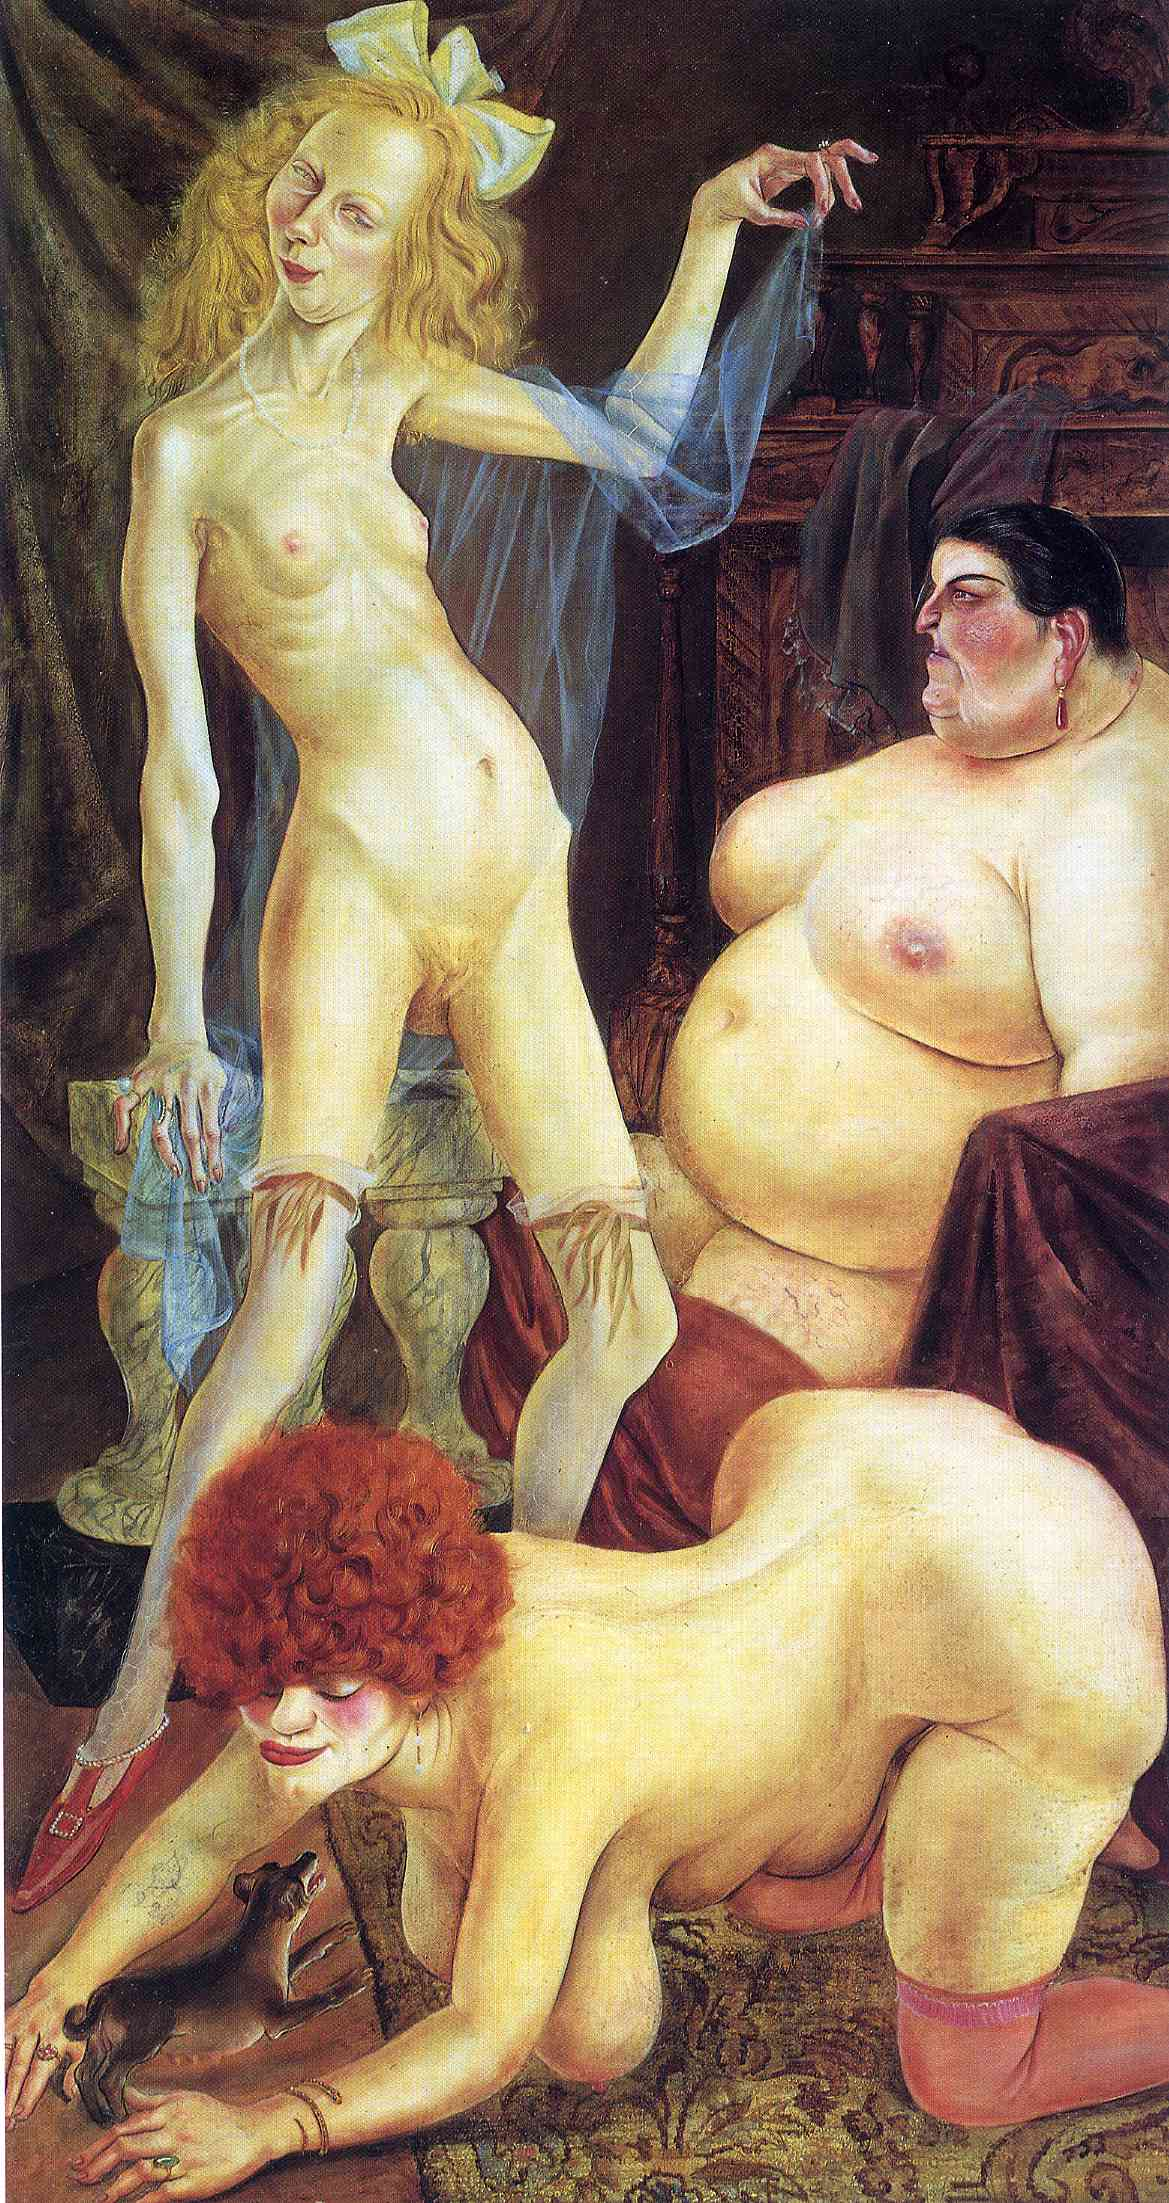 http://uploads1.wikipaintings.org/images/otto-dix/three-wenches.jpg